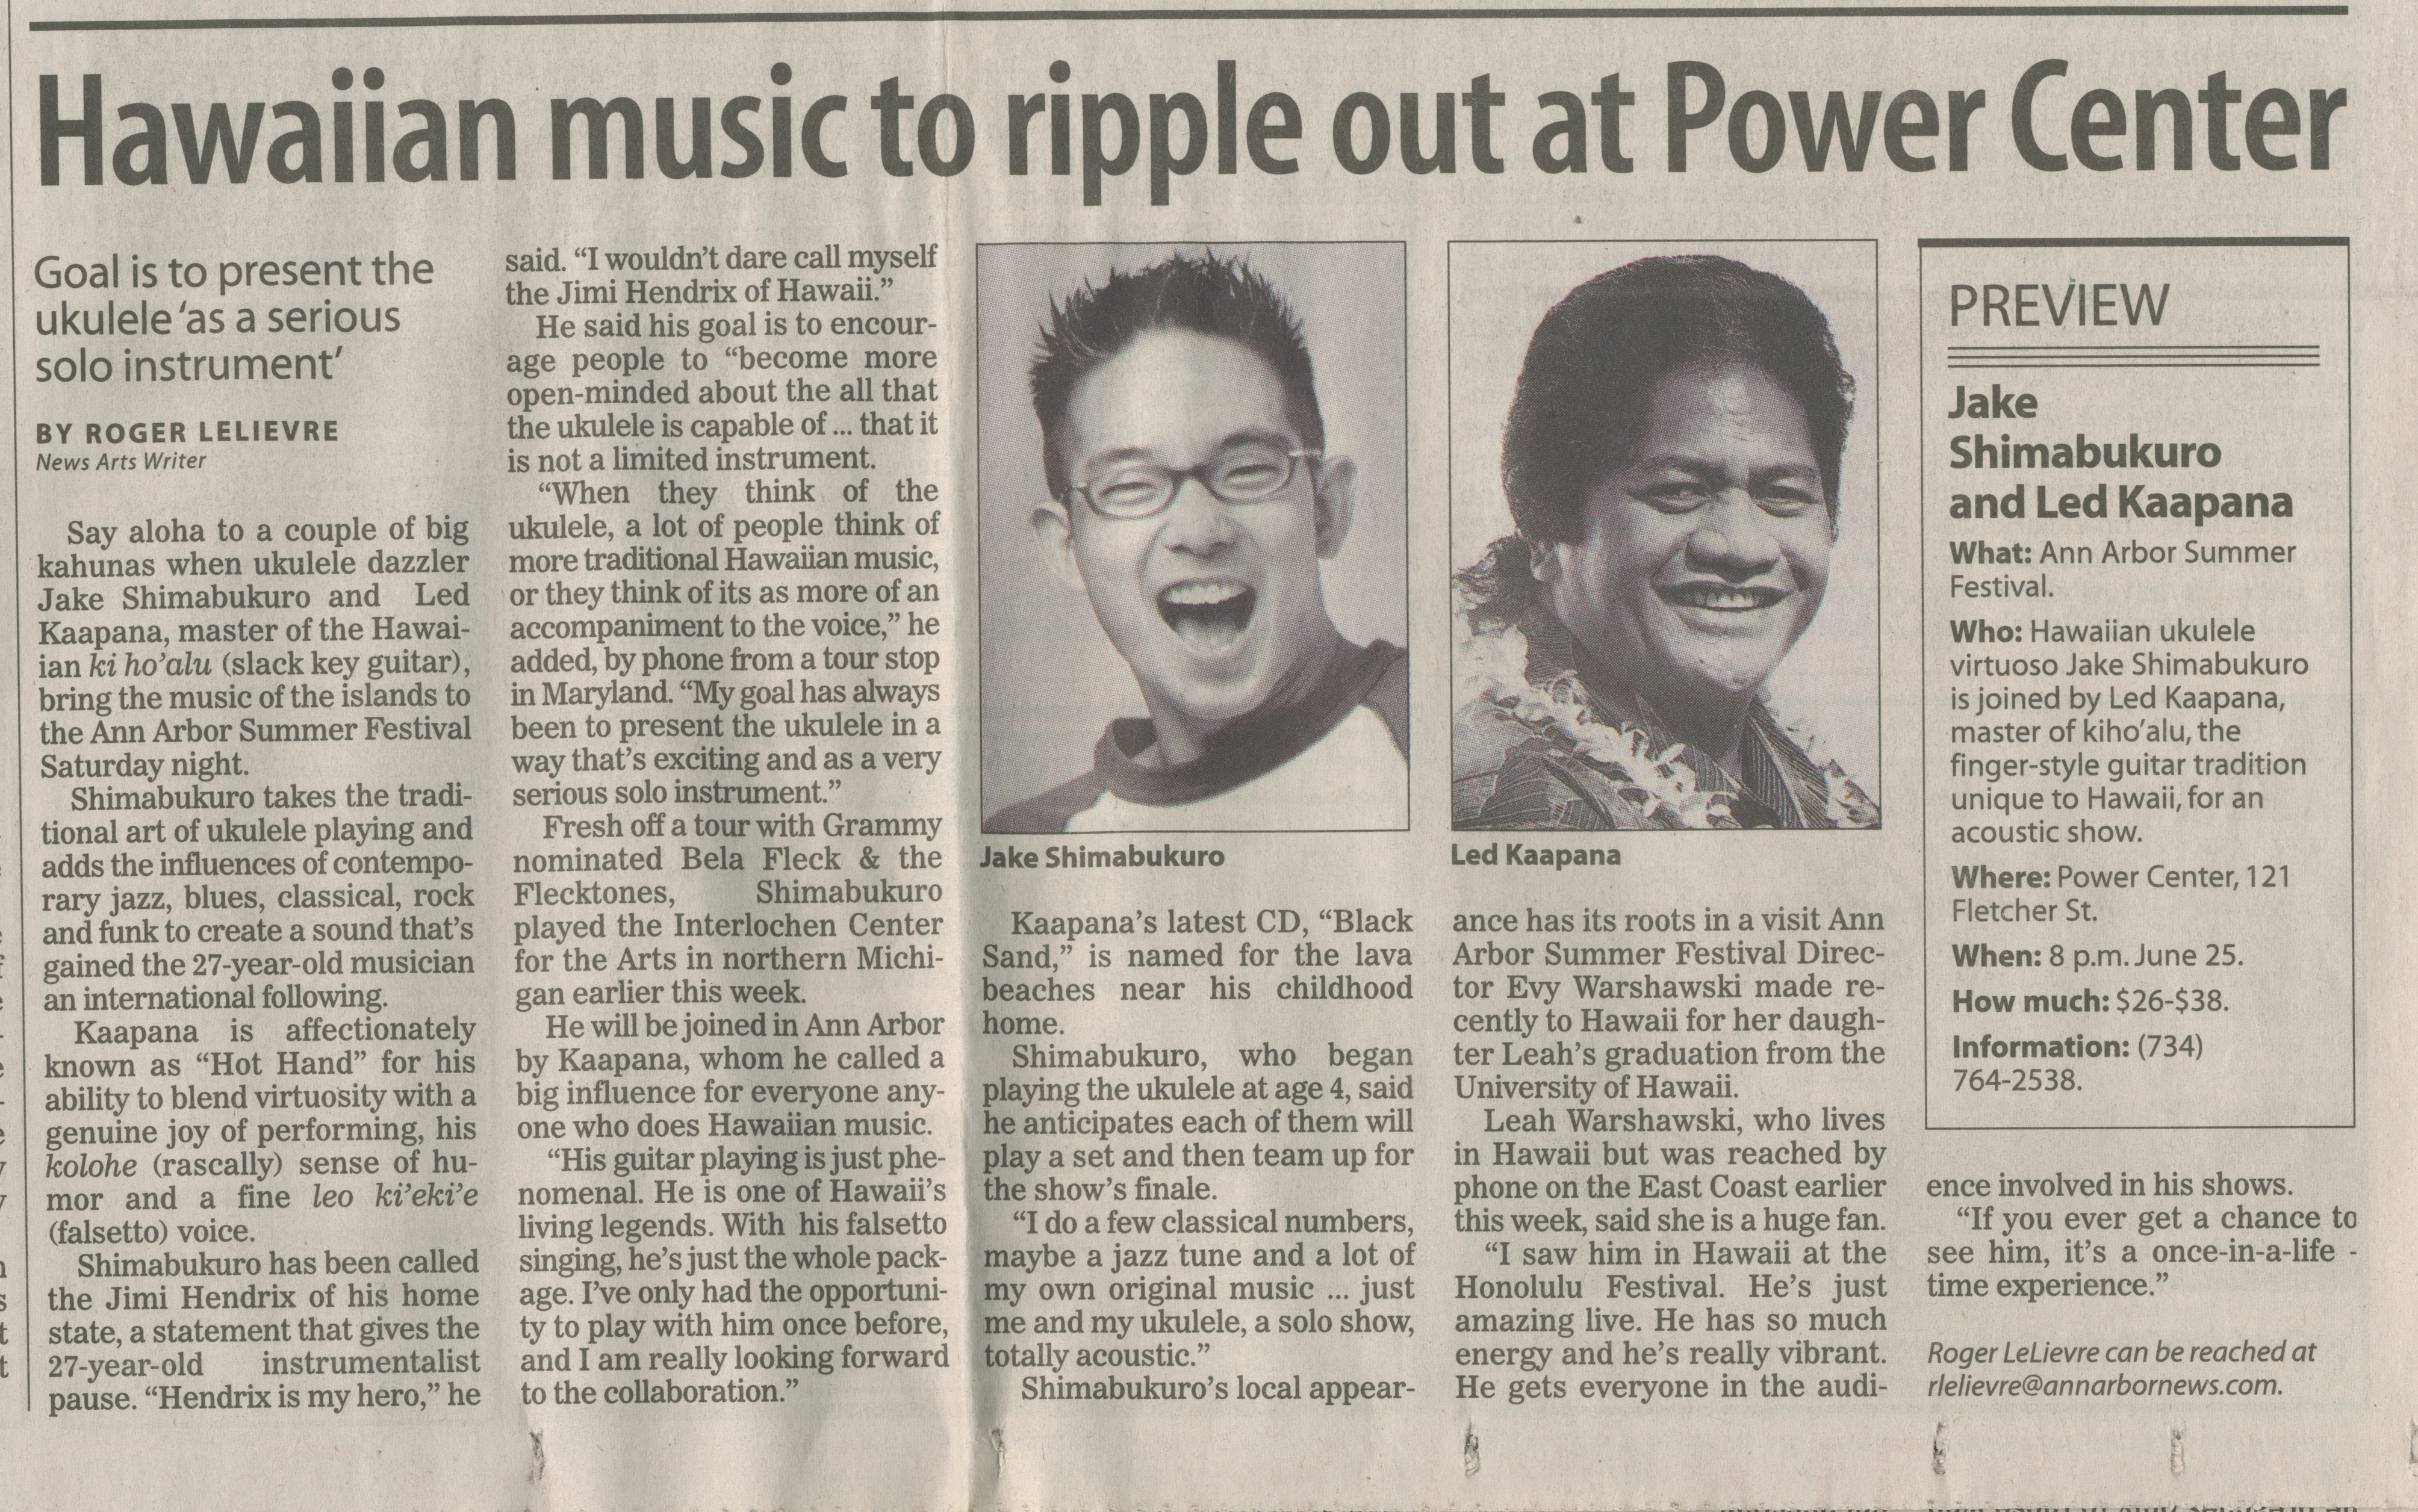 Hawaiian music to ripple out at Power Center image